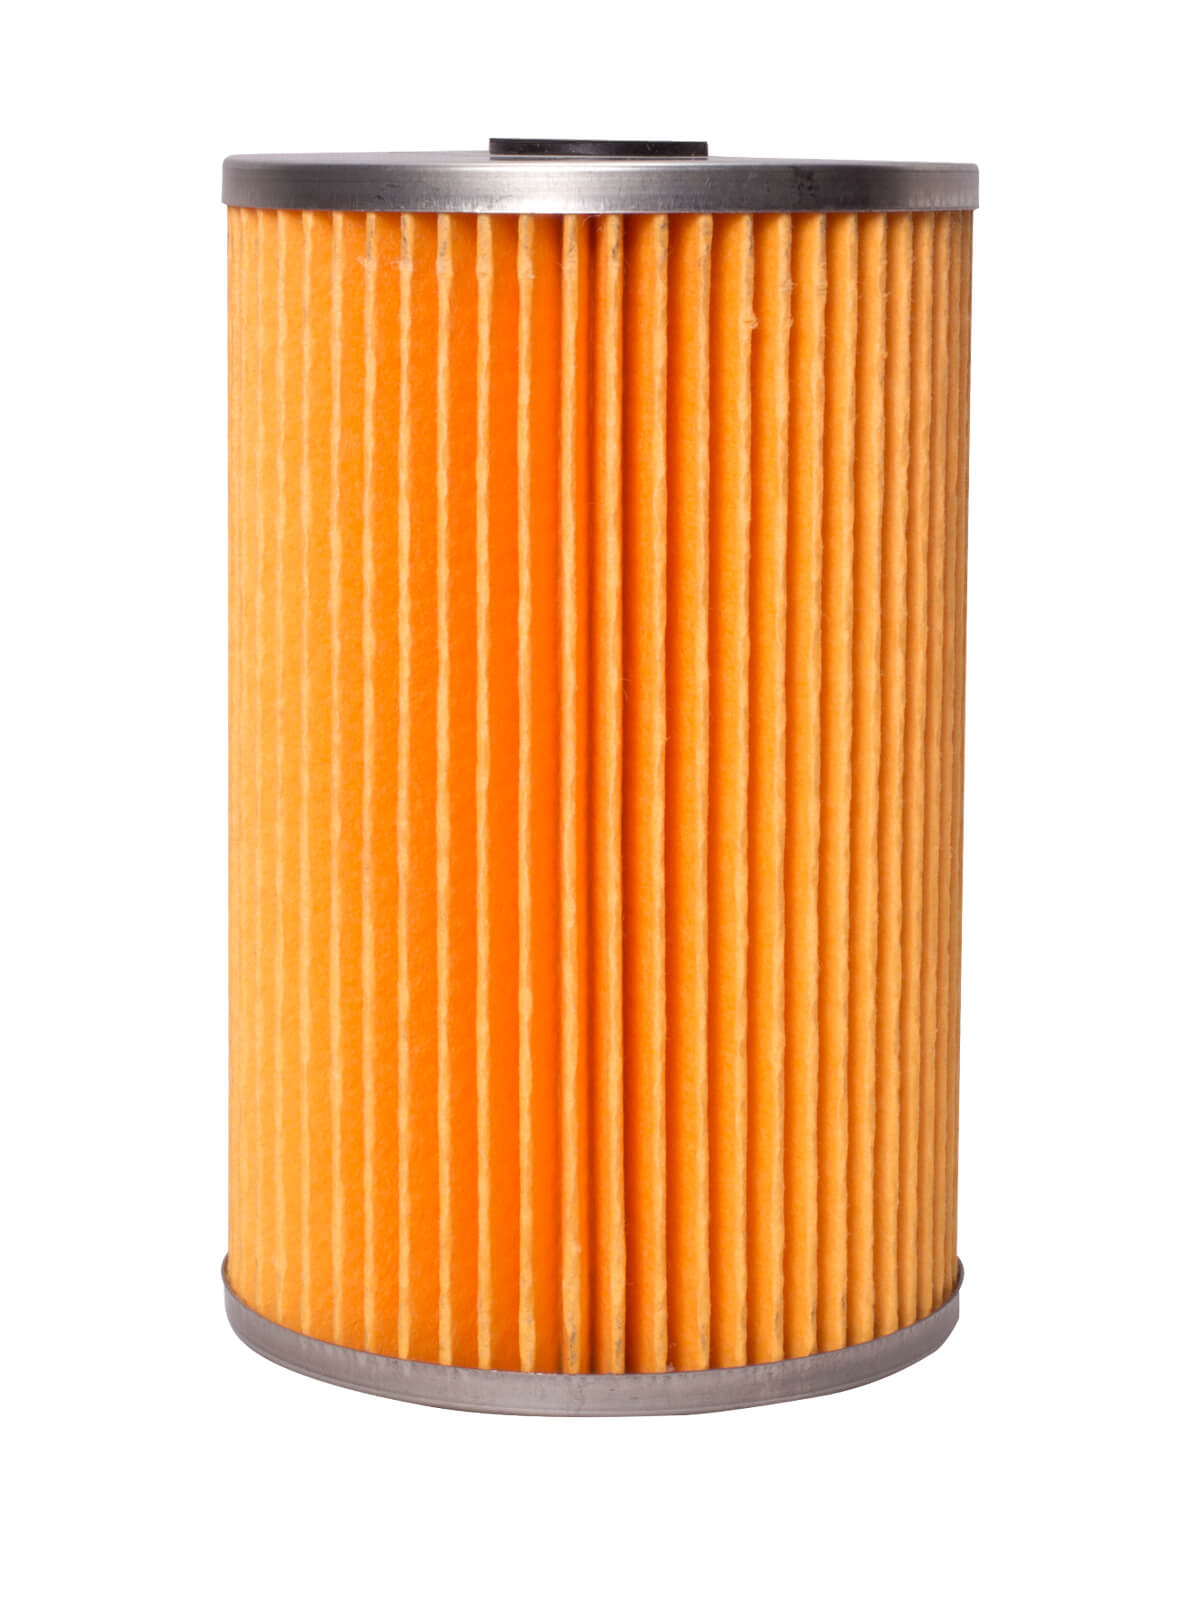 Oil Filter (HINO- EH700, BUS/TRUCK)